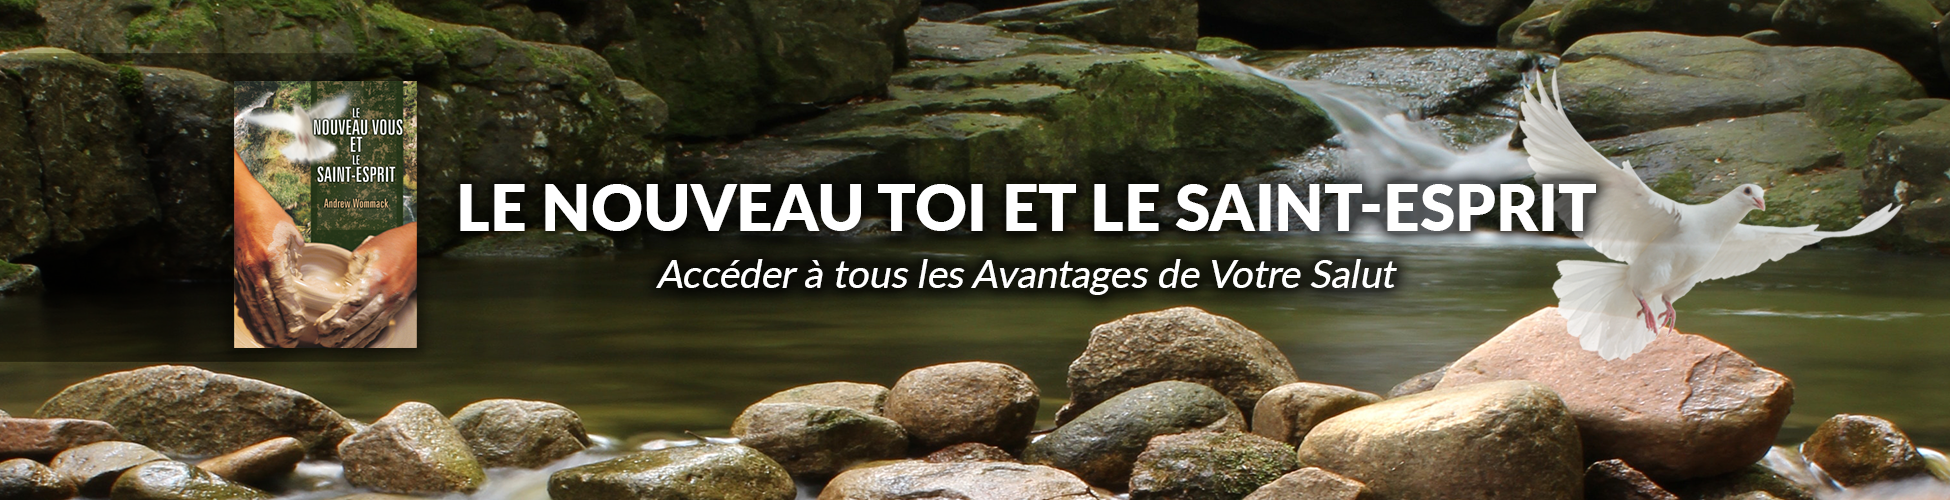 French-ACO_New-You-and-The-Holy-Spirit_Website-Banner_1950x5001